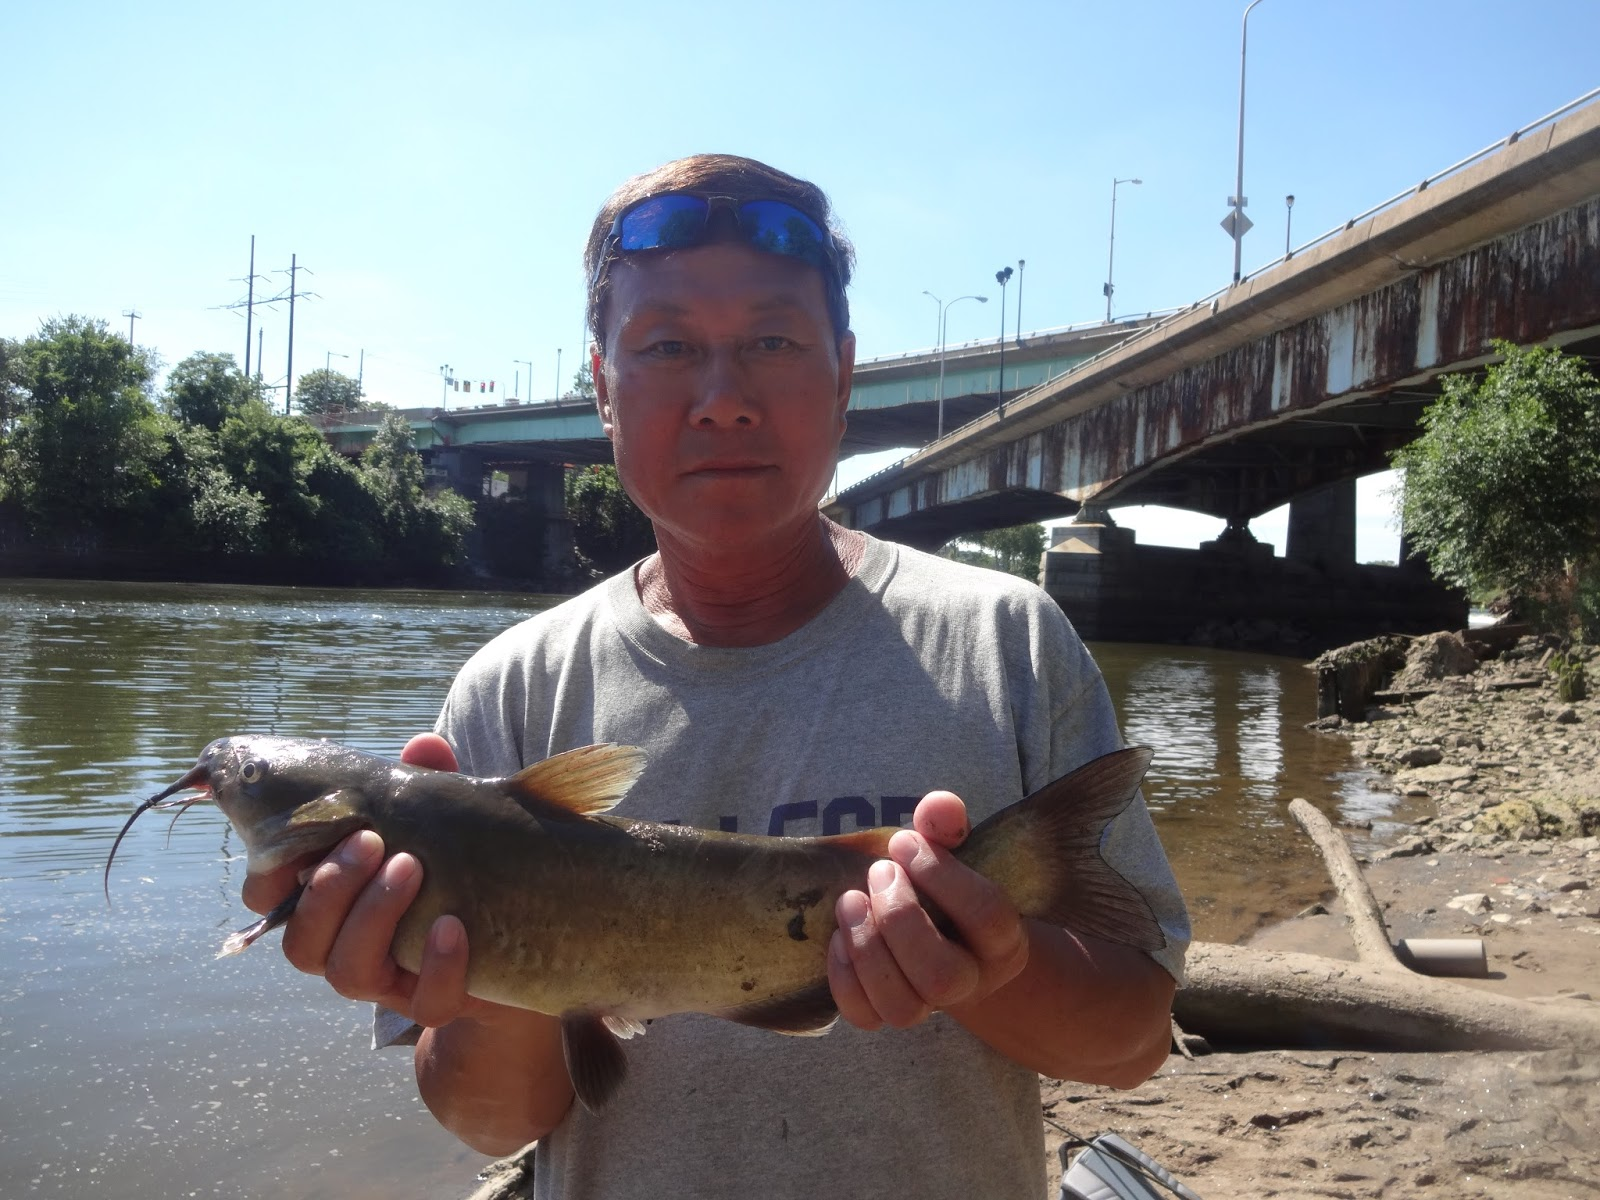 Extreme philly fishing june fishing sessions 06 24 for Extreme philly fishing